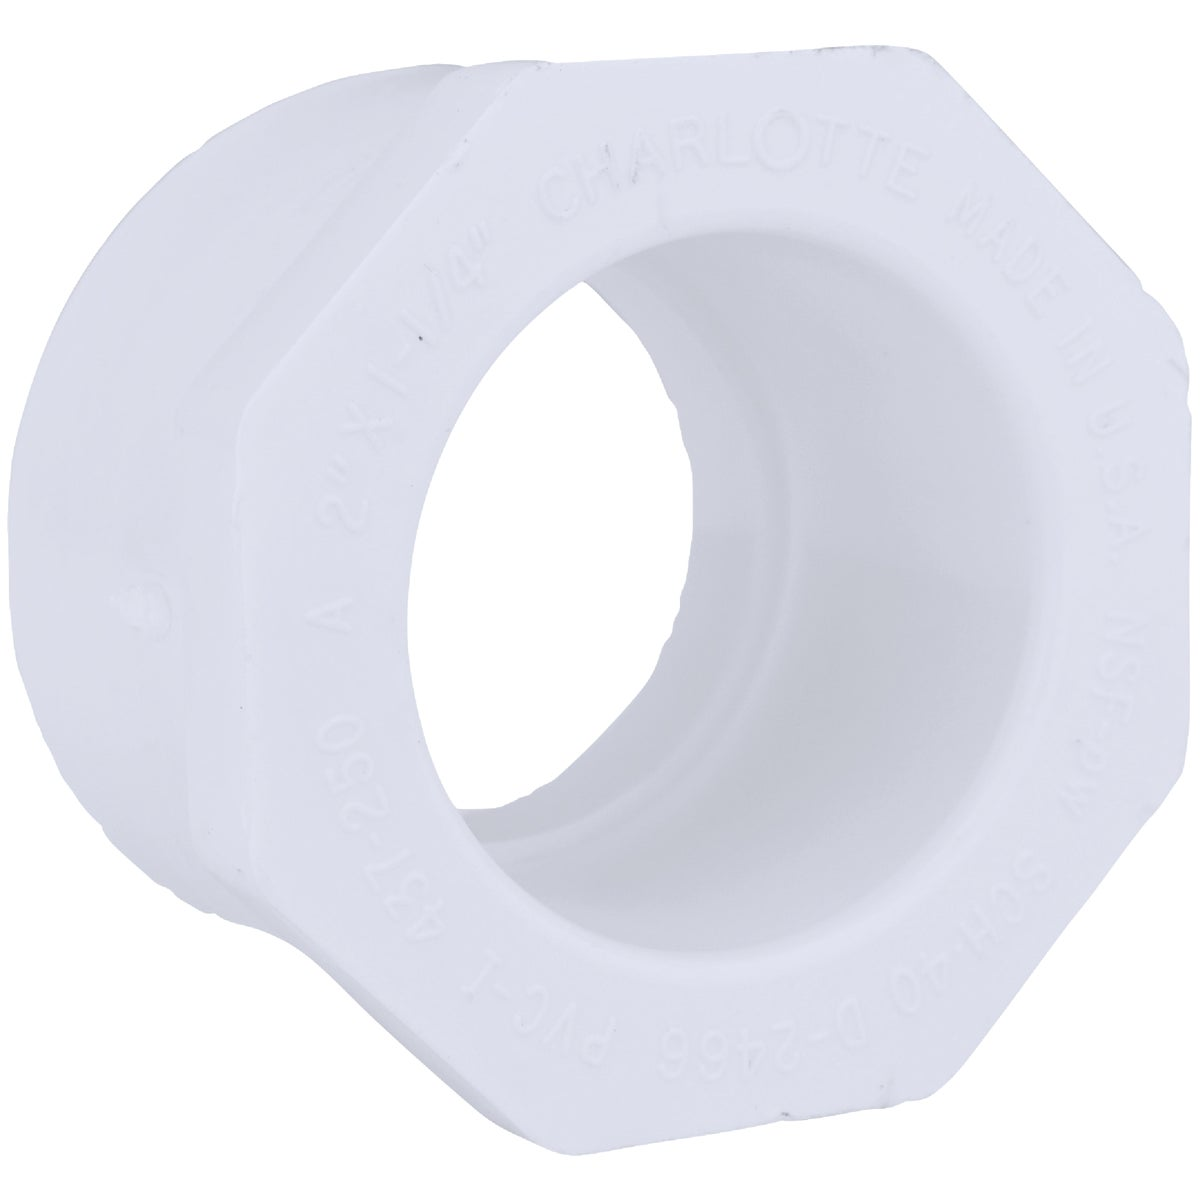 2X1-1/4 PVC SPXS BUSHING - 30224 by Genova Inc